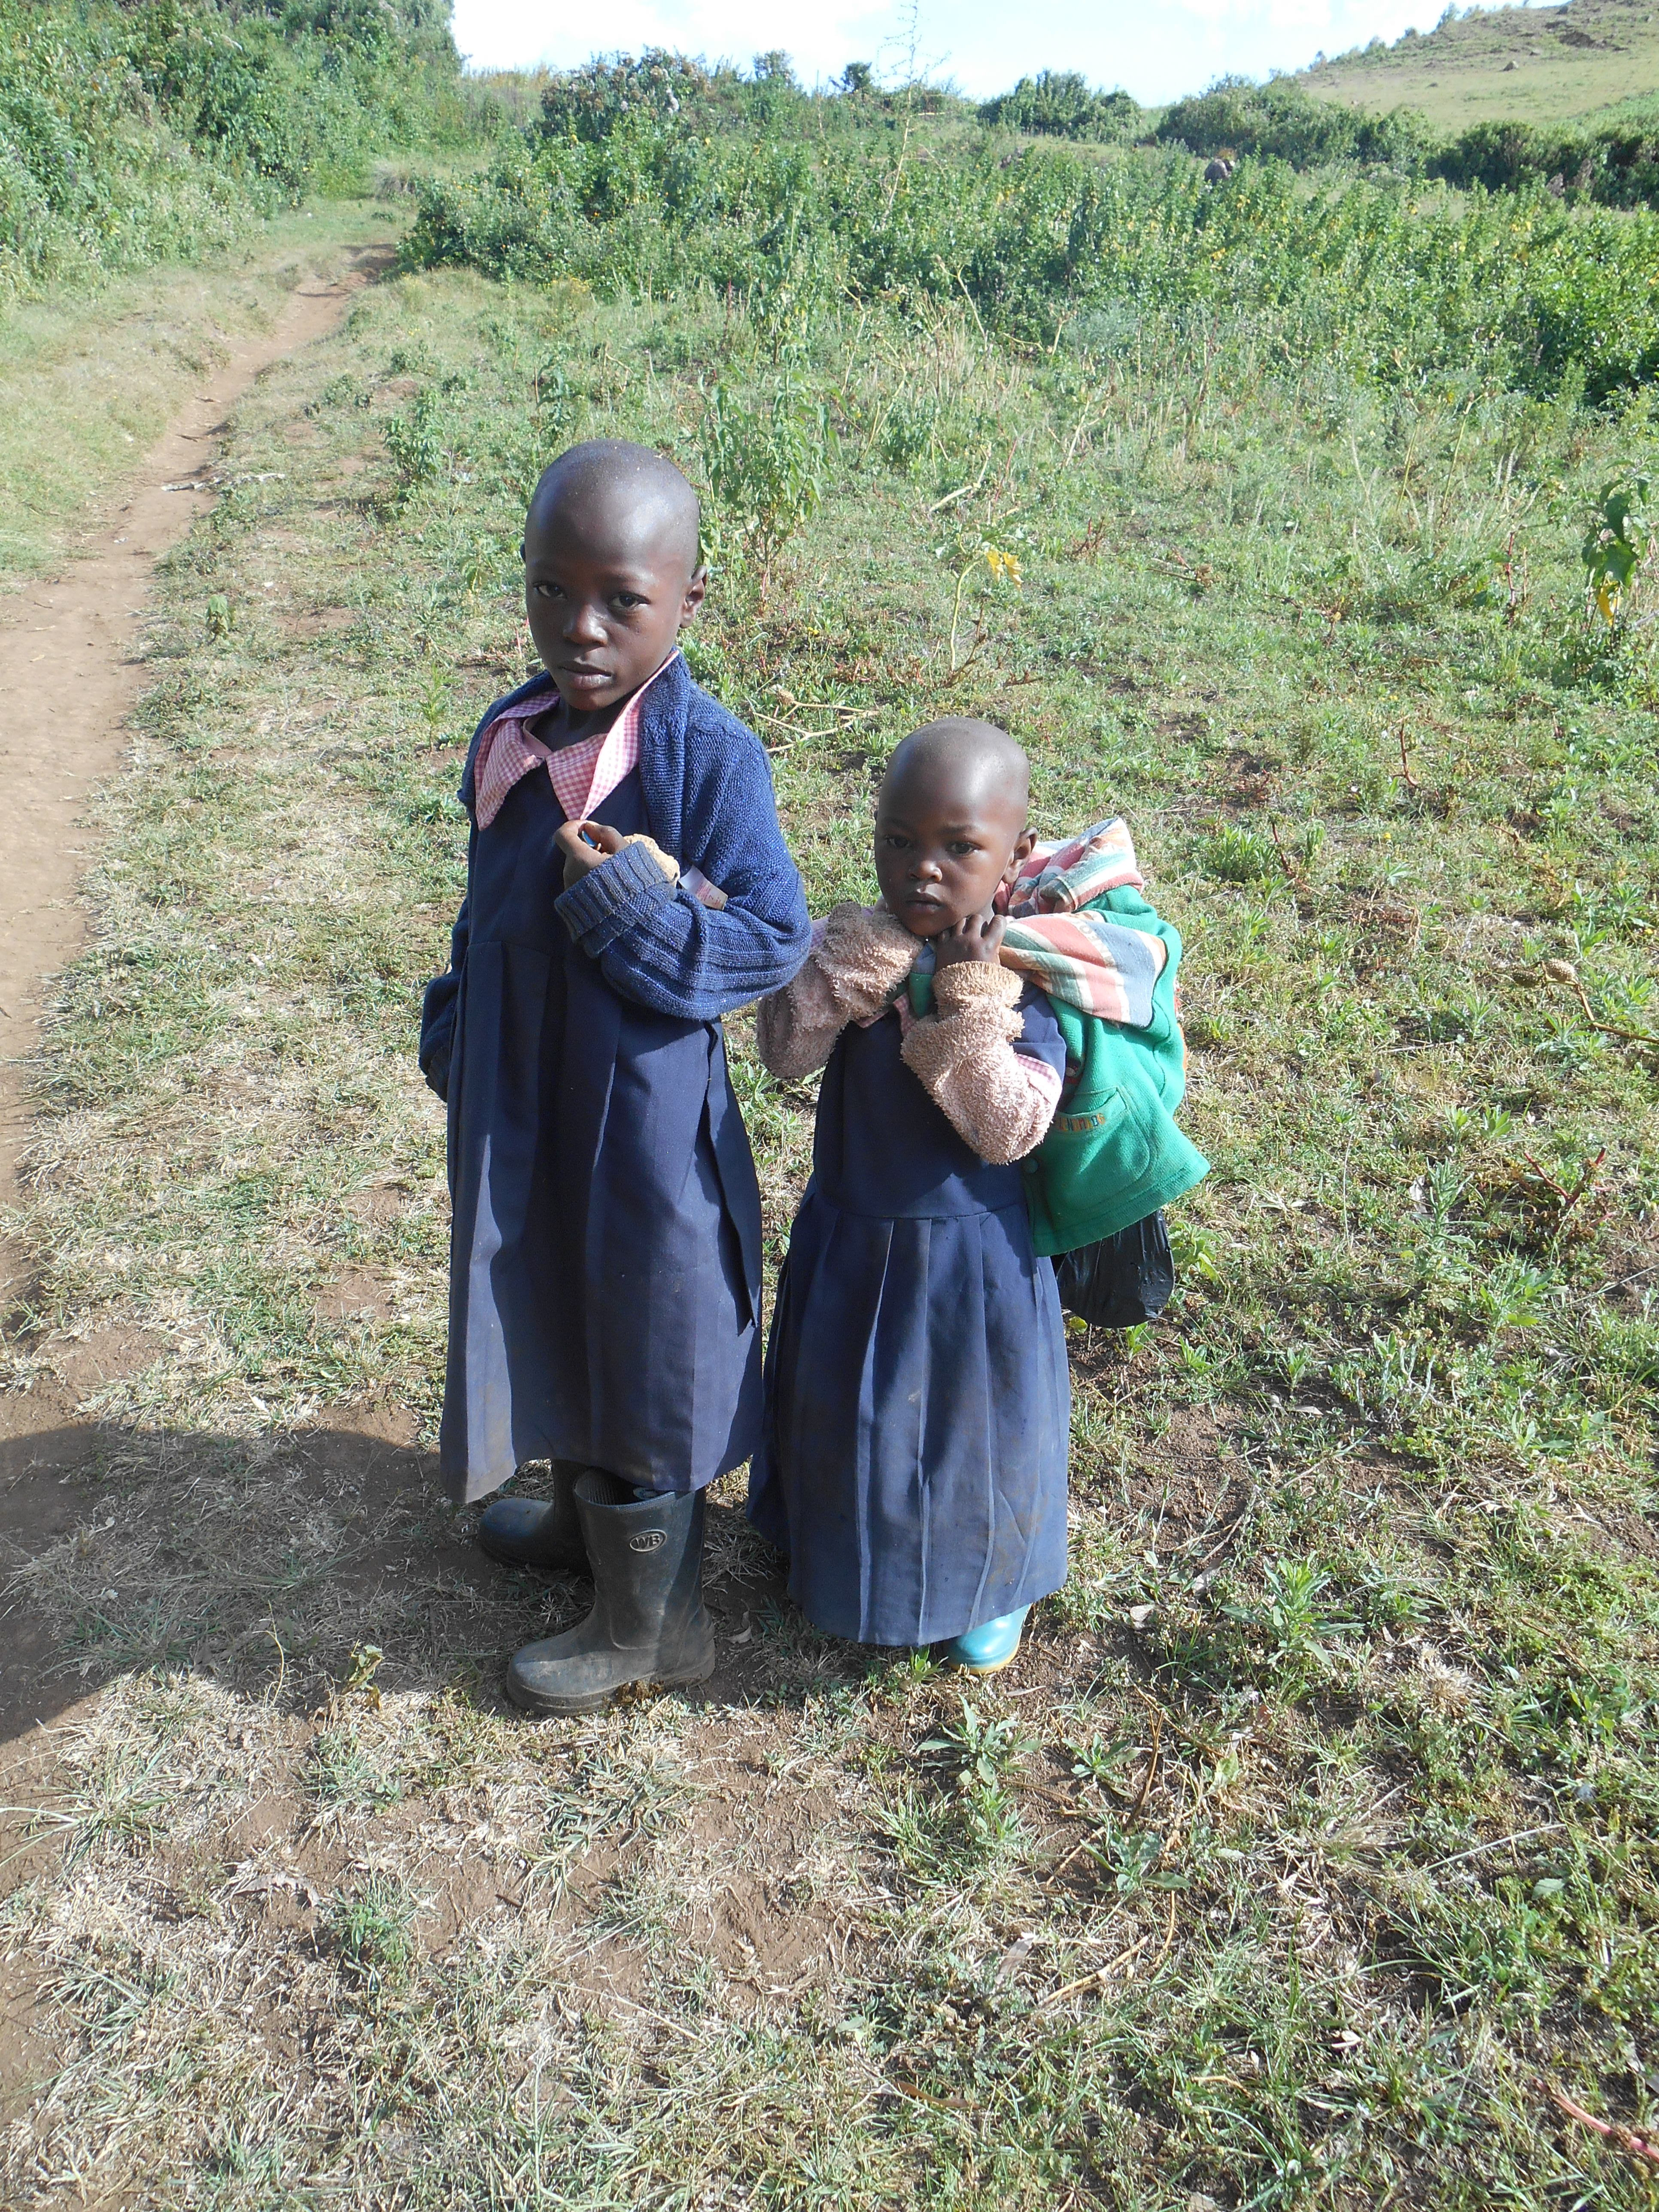 Children at the settlement for internally displaced persons in the Rift Valley, Kenya (Photo by author)